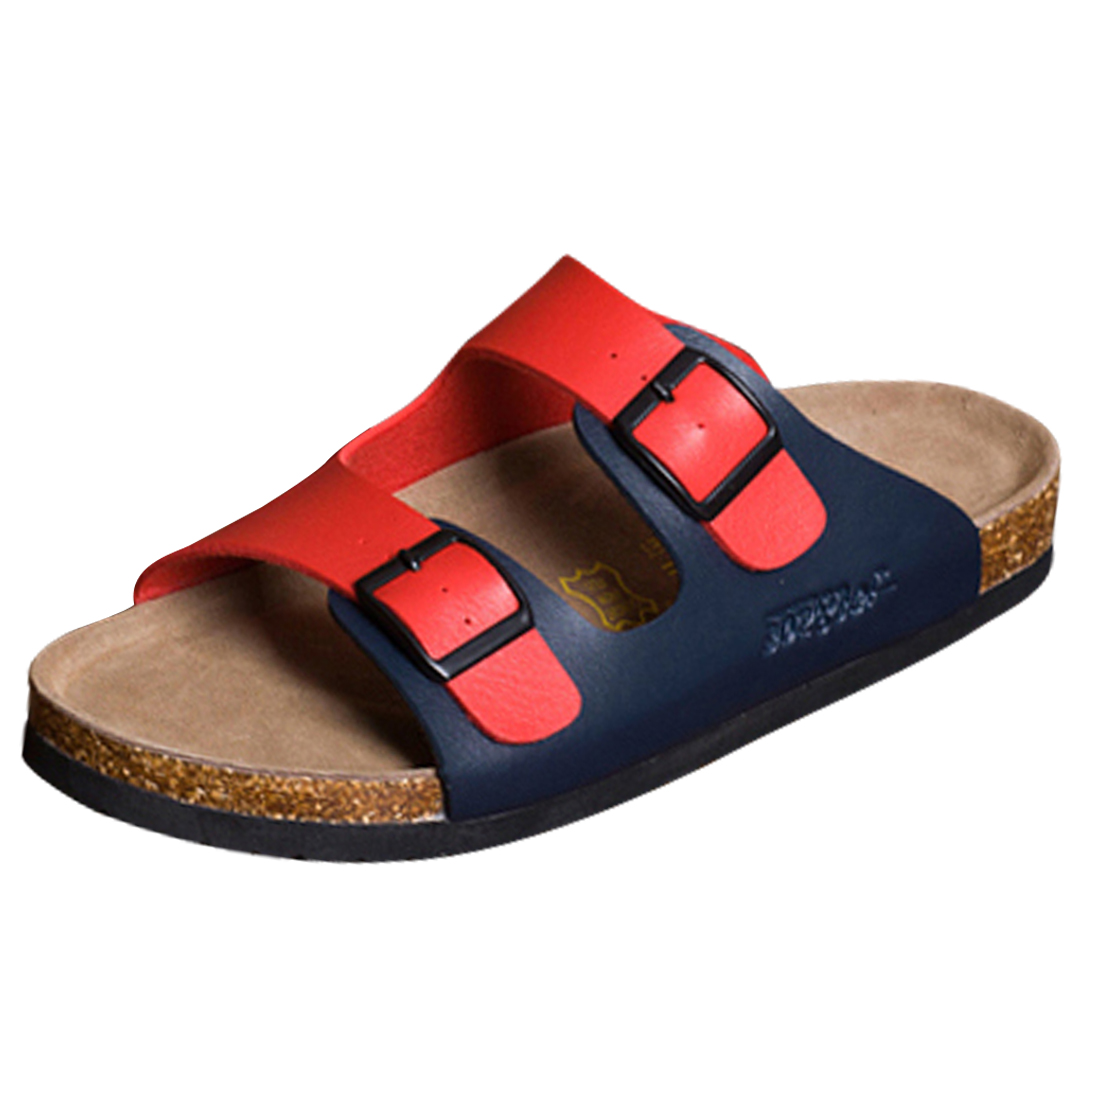 Men Adjustable Buckles Stylish Sandals Red Navy Blue US 8